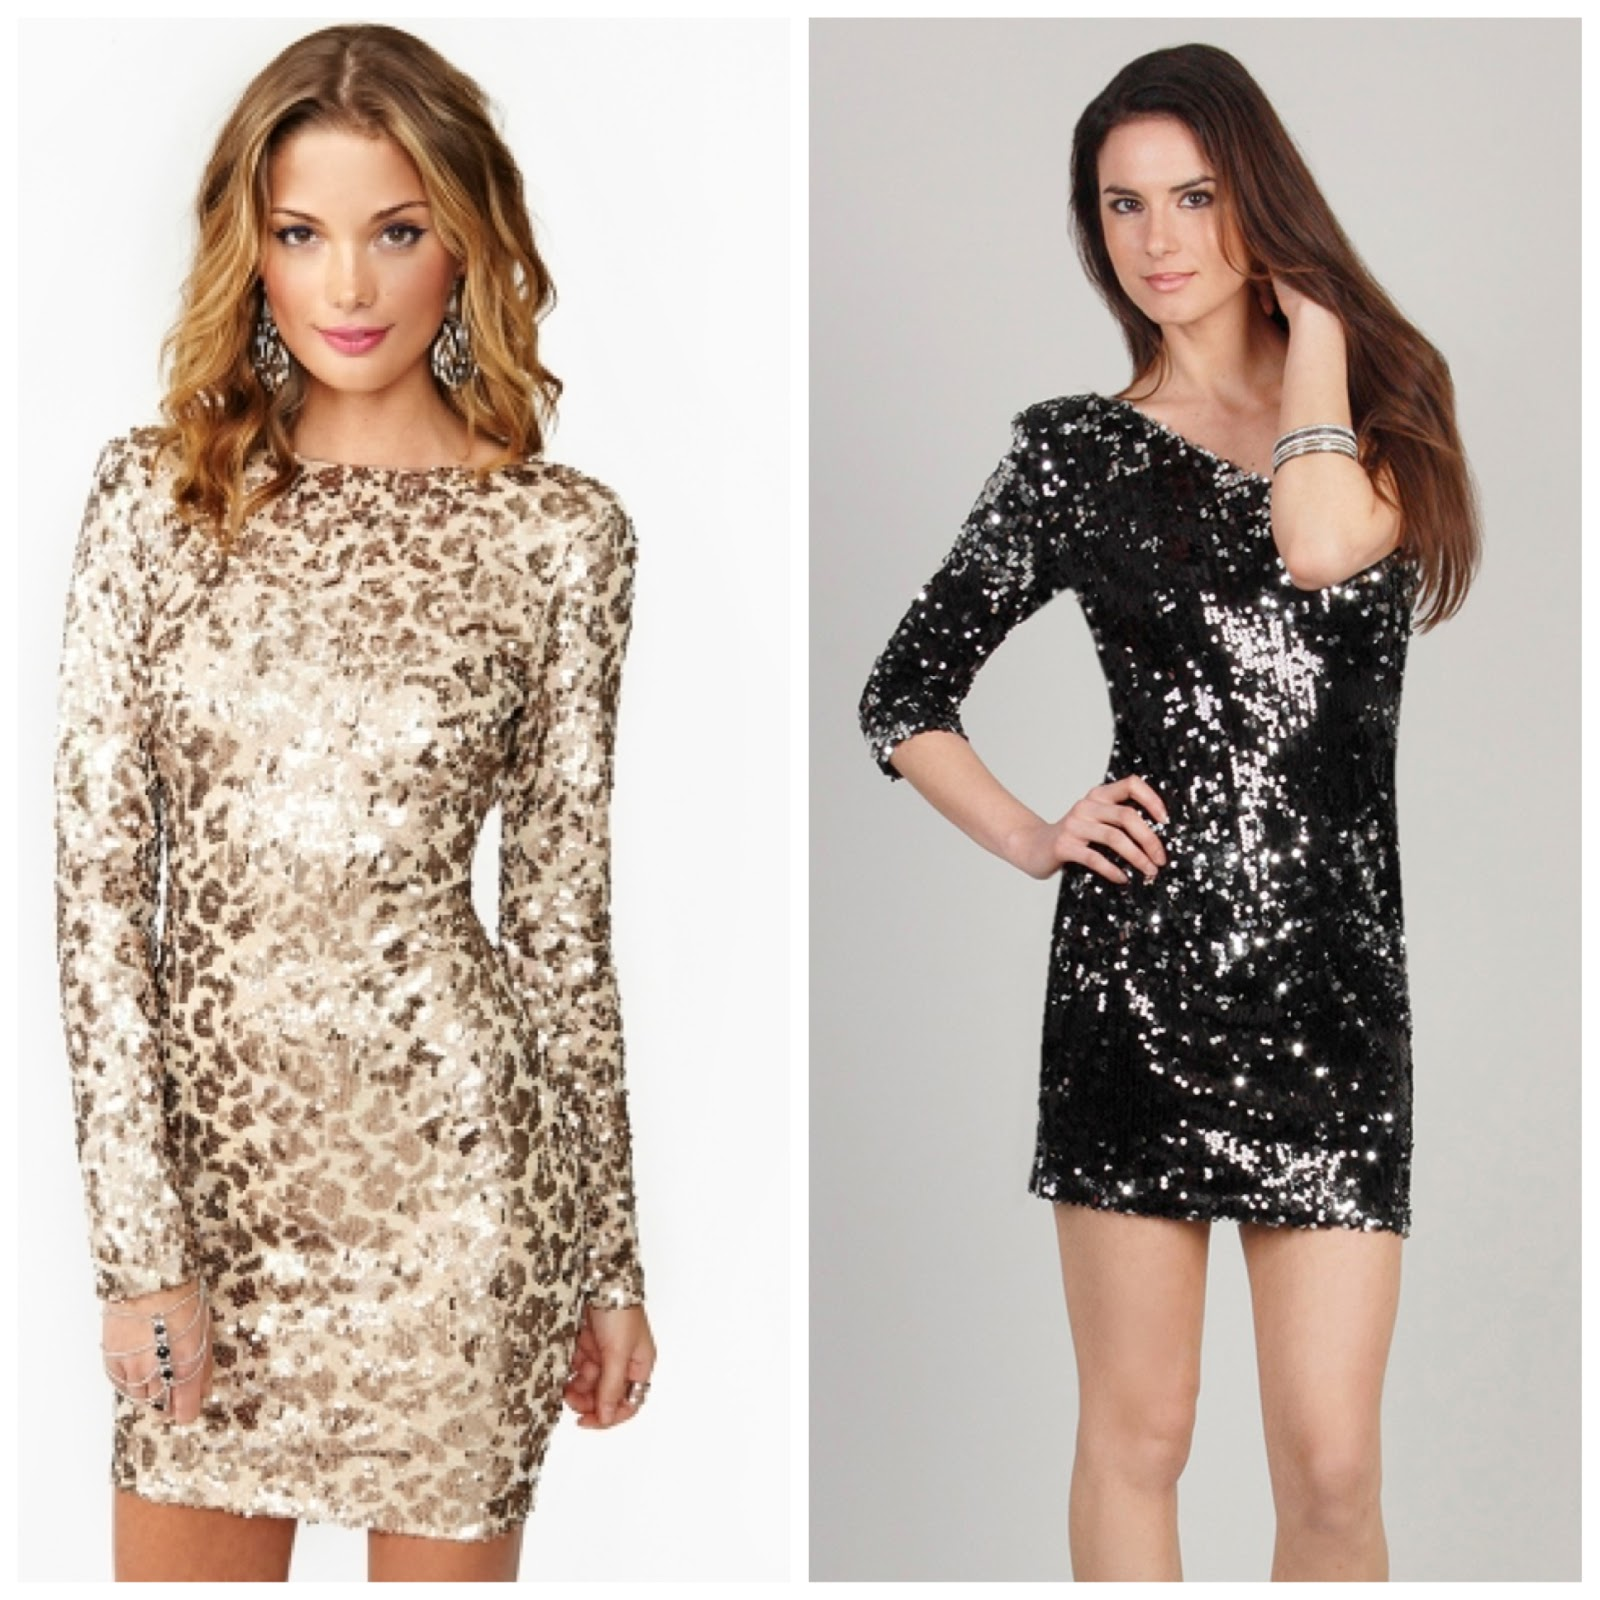 Simple dresses: Christmas party dresses canada